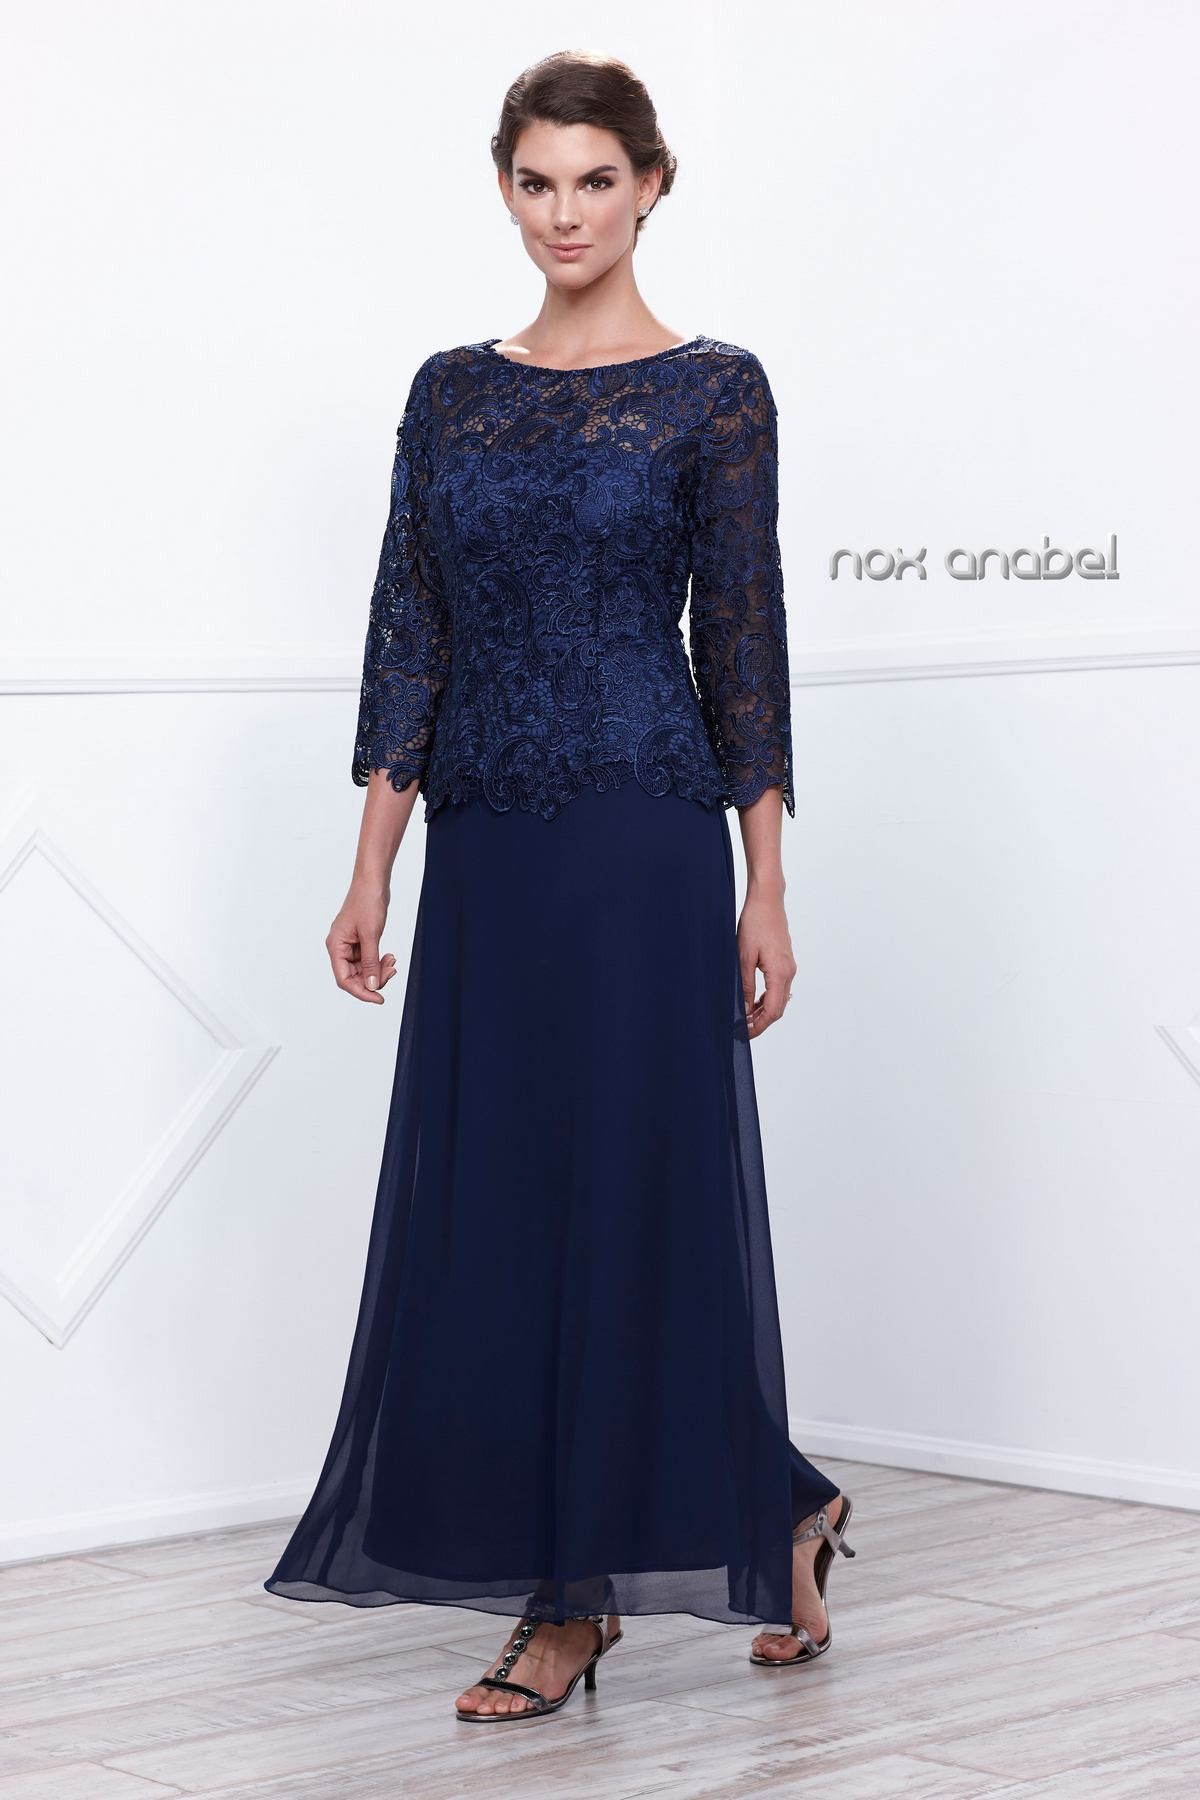 Long lace bodice dress with sleeves by nox anabel lace